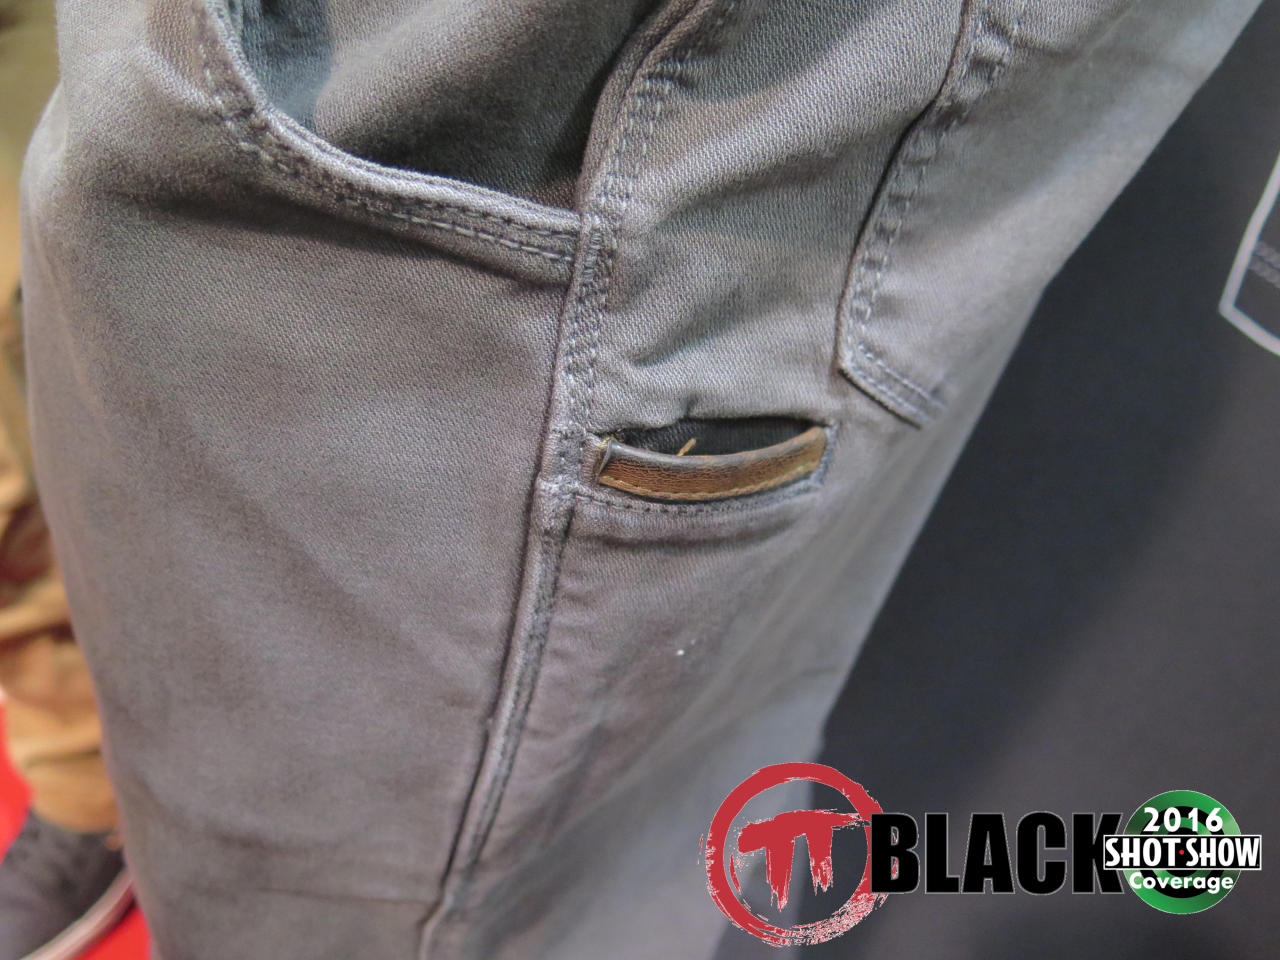 Leather-trimmed Tool Pocket on Delta Stretch Pants